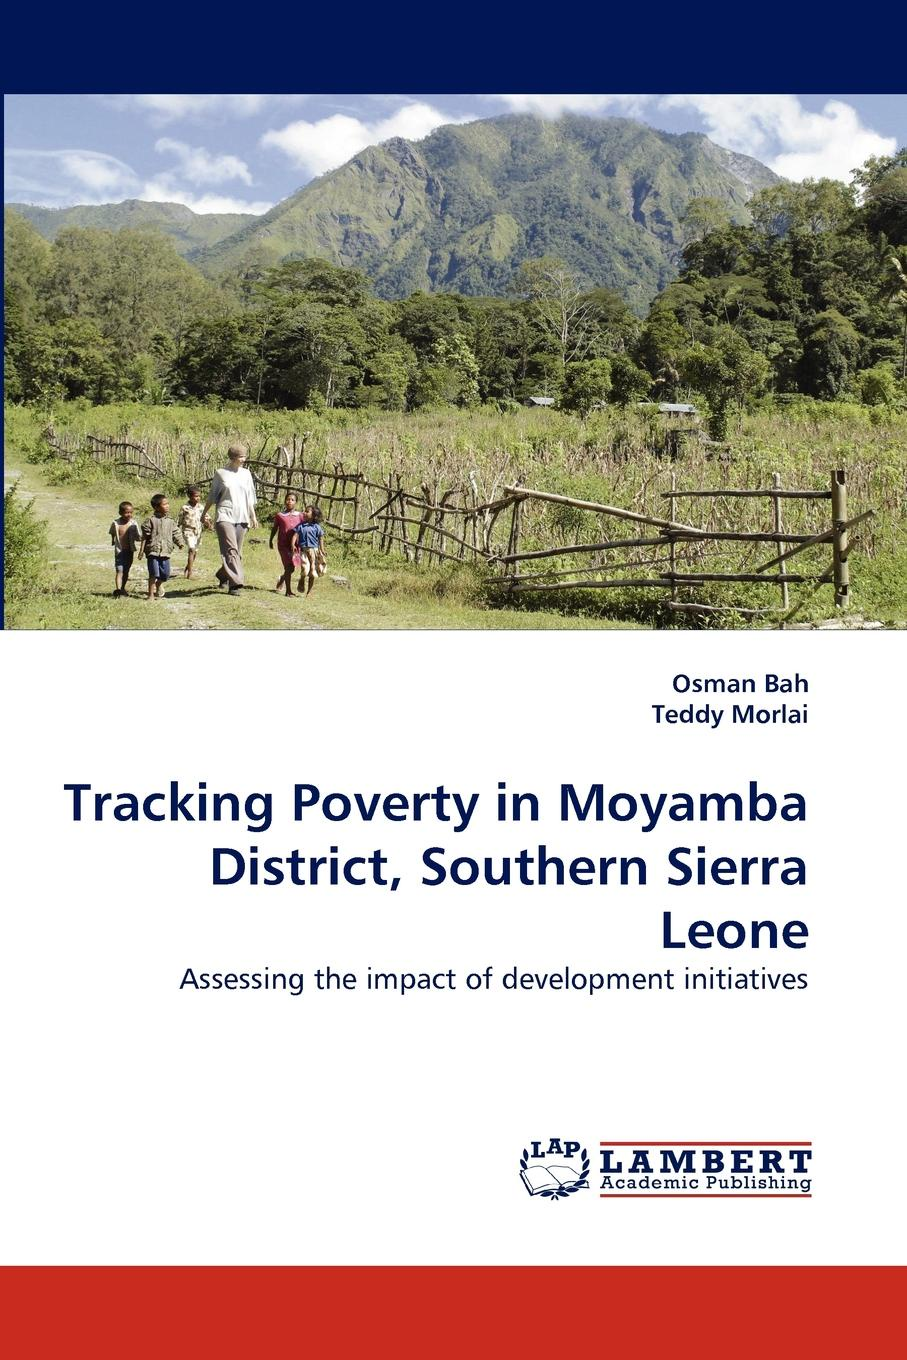 Osman Bah, Teddy Morlai Tracking Poverty in Moyamba District, Southern Sierra Leone thoti mallikarjuna rural development programmes in chitoor district of andhra pradesh